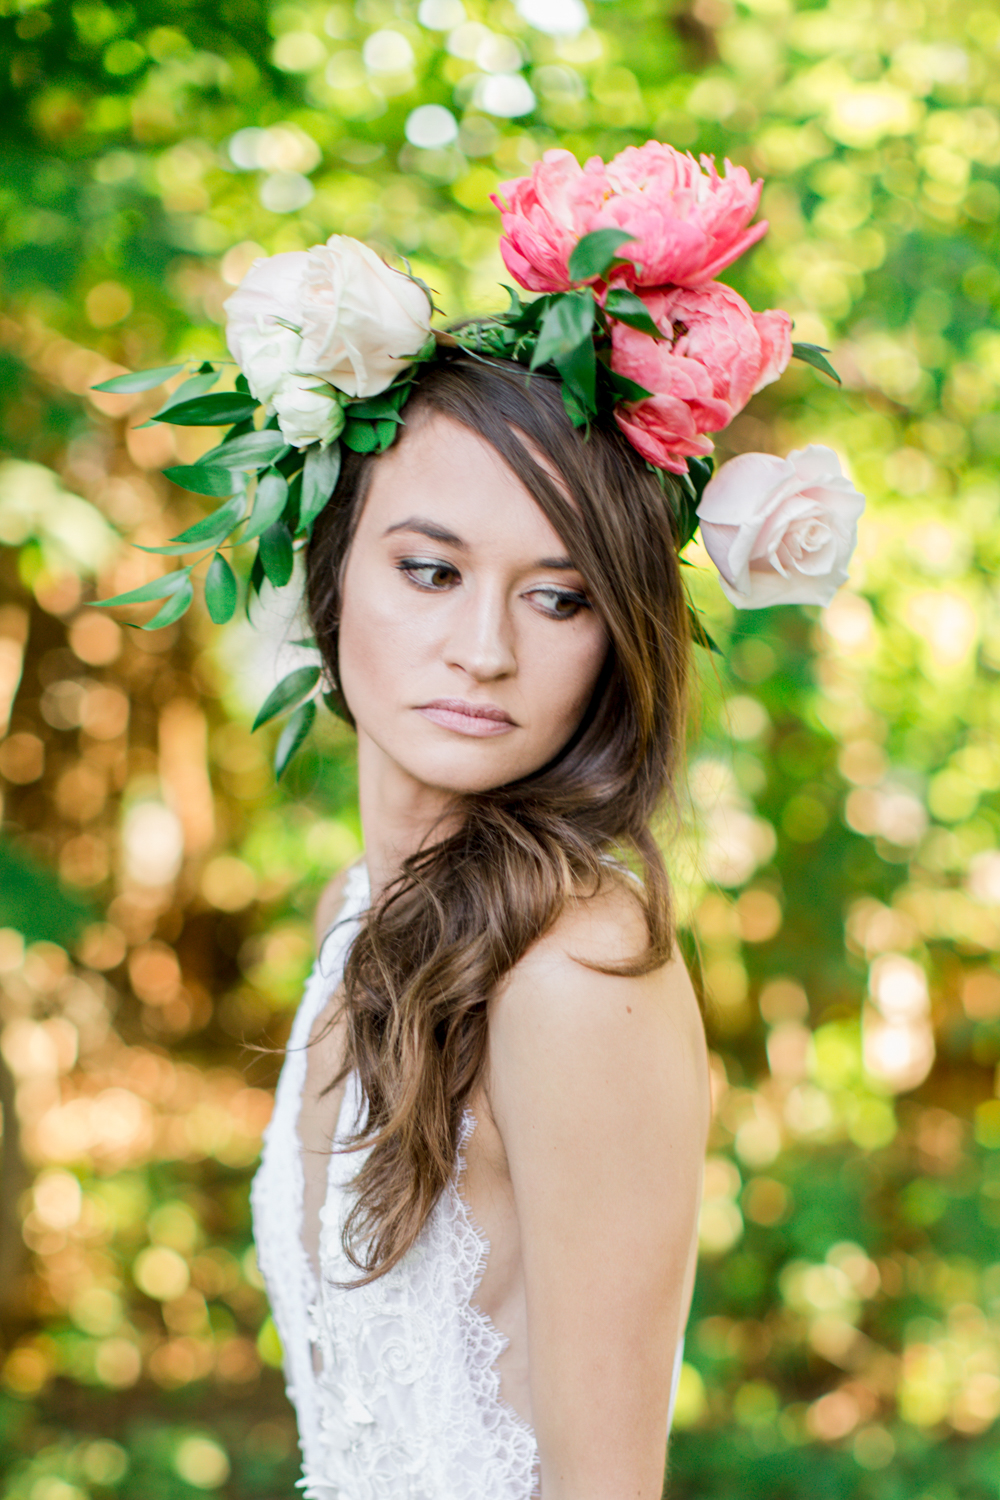 Marni Hoest rocking a La Tulipe flower crown and Madalyn Joy Designs nightgown.